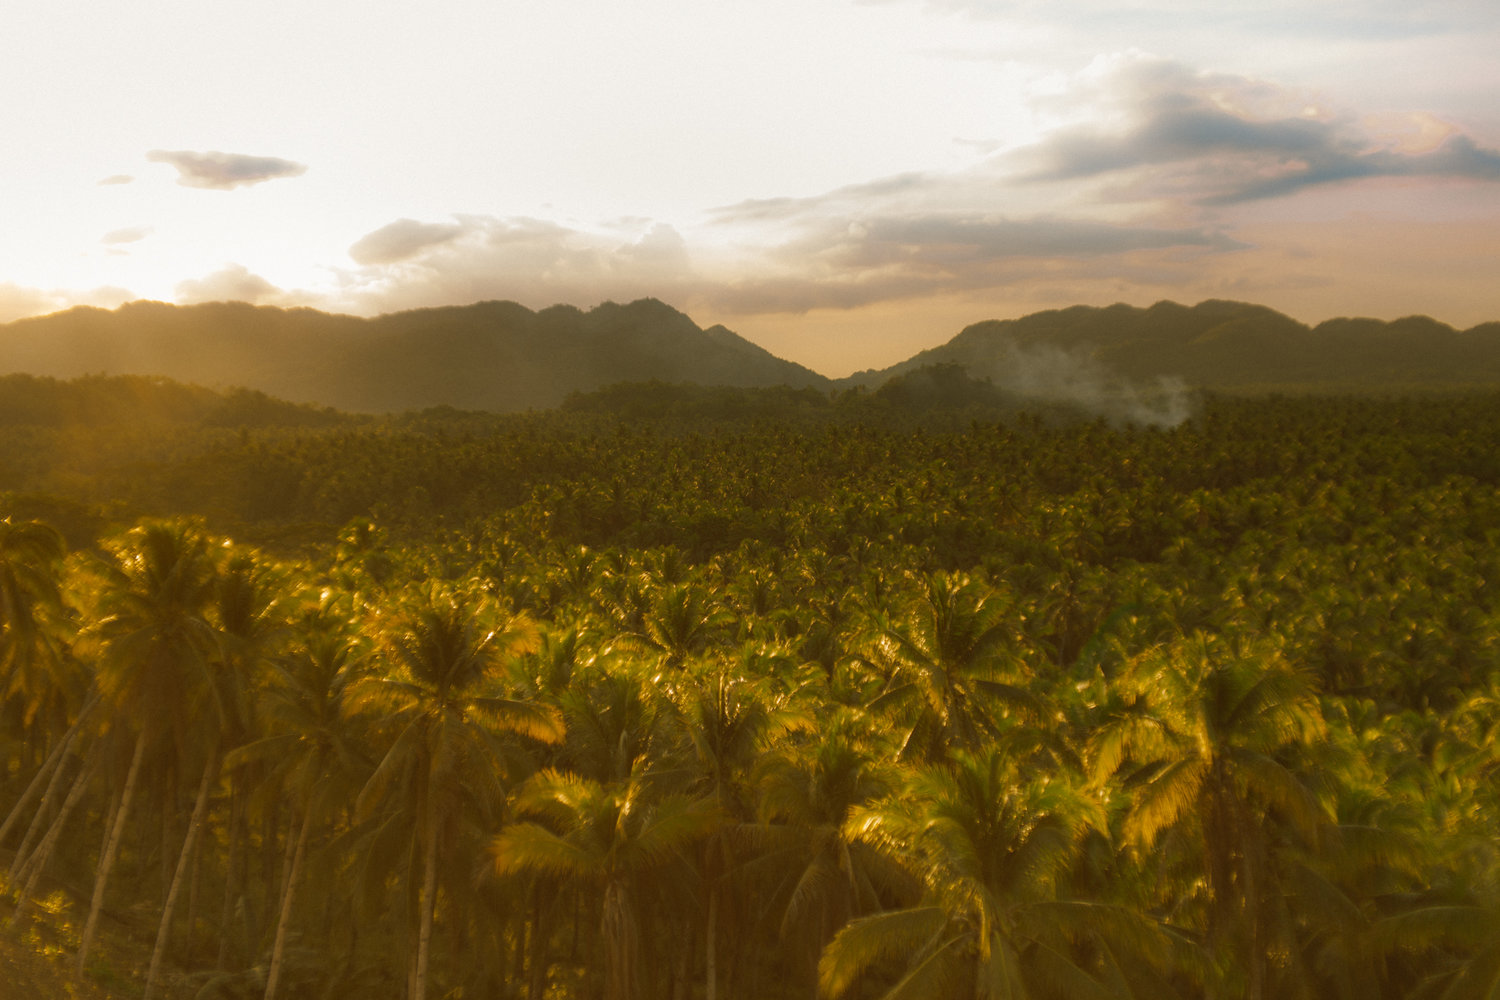 Siargao,+Philippines+-+Coconut+Tree+Canopy+-+Sunset+Feels.jpg